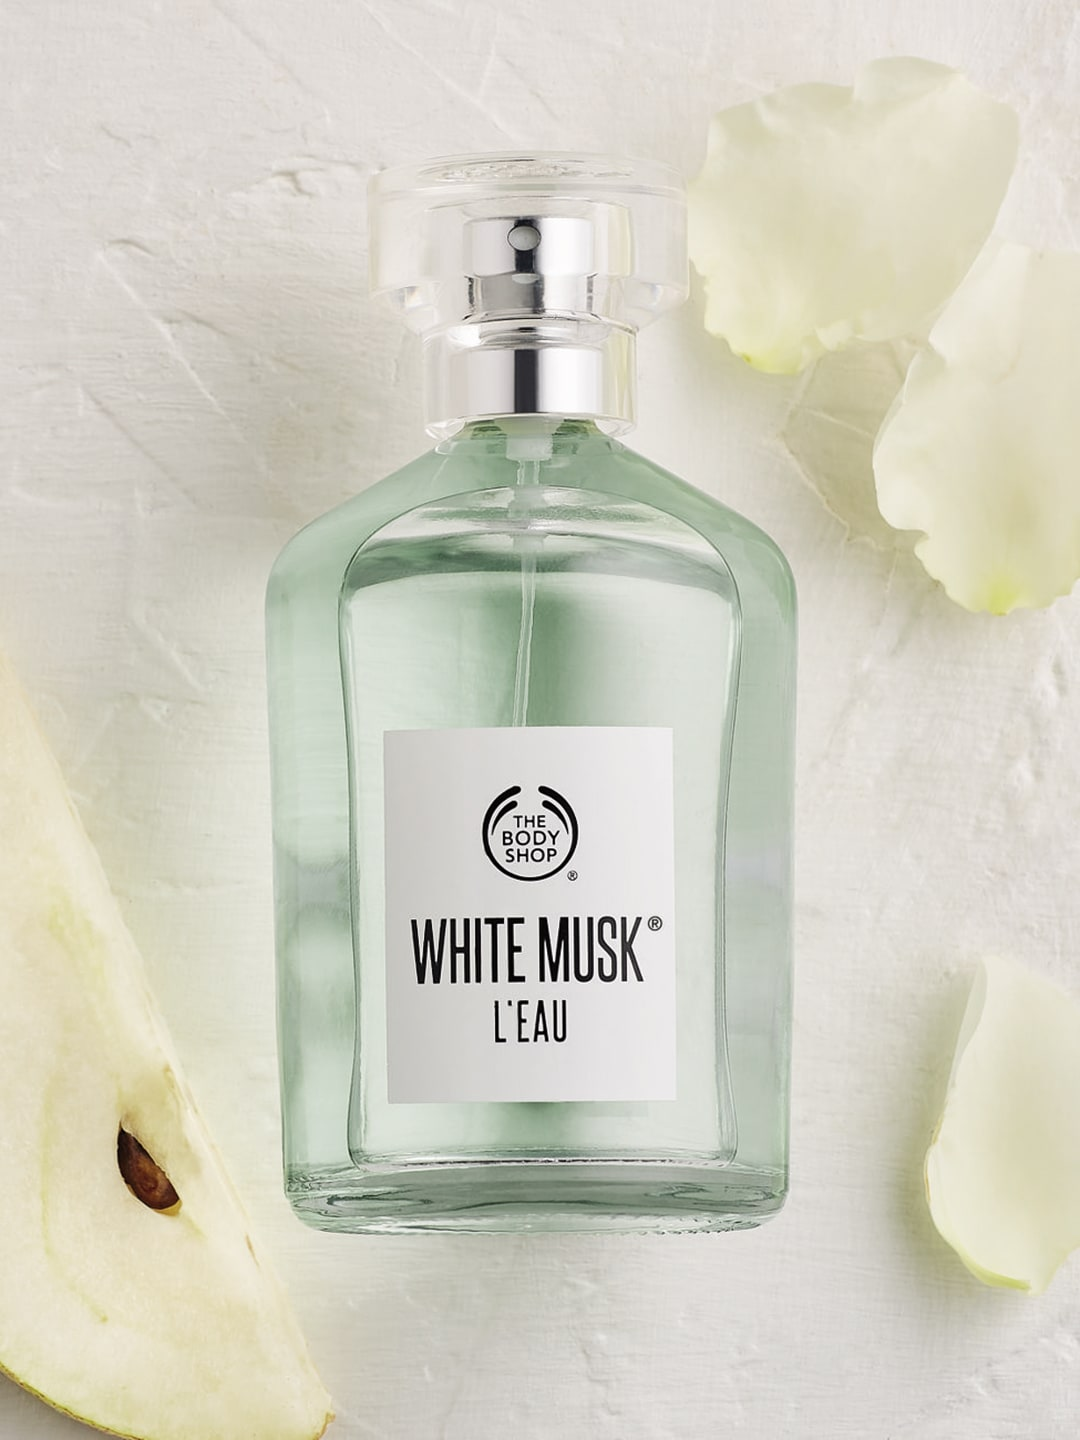 Body White Shop Toilette Eau The Leau Musk De c3RL54jqA